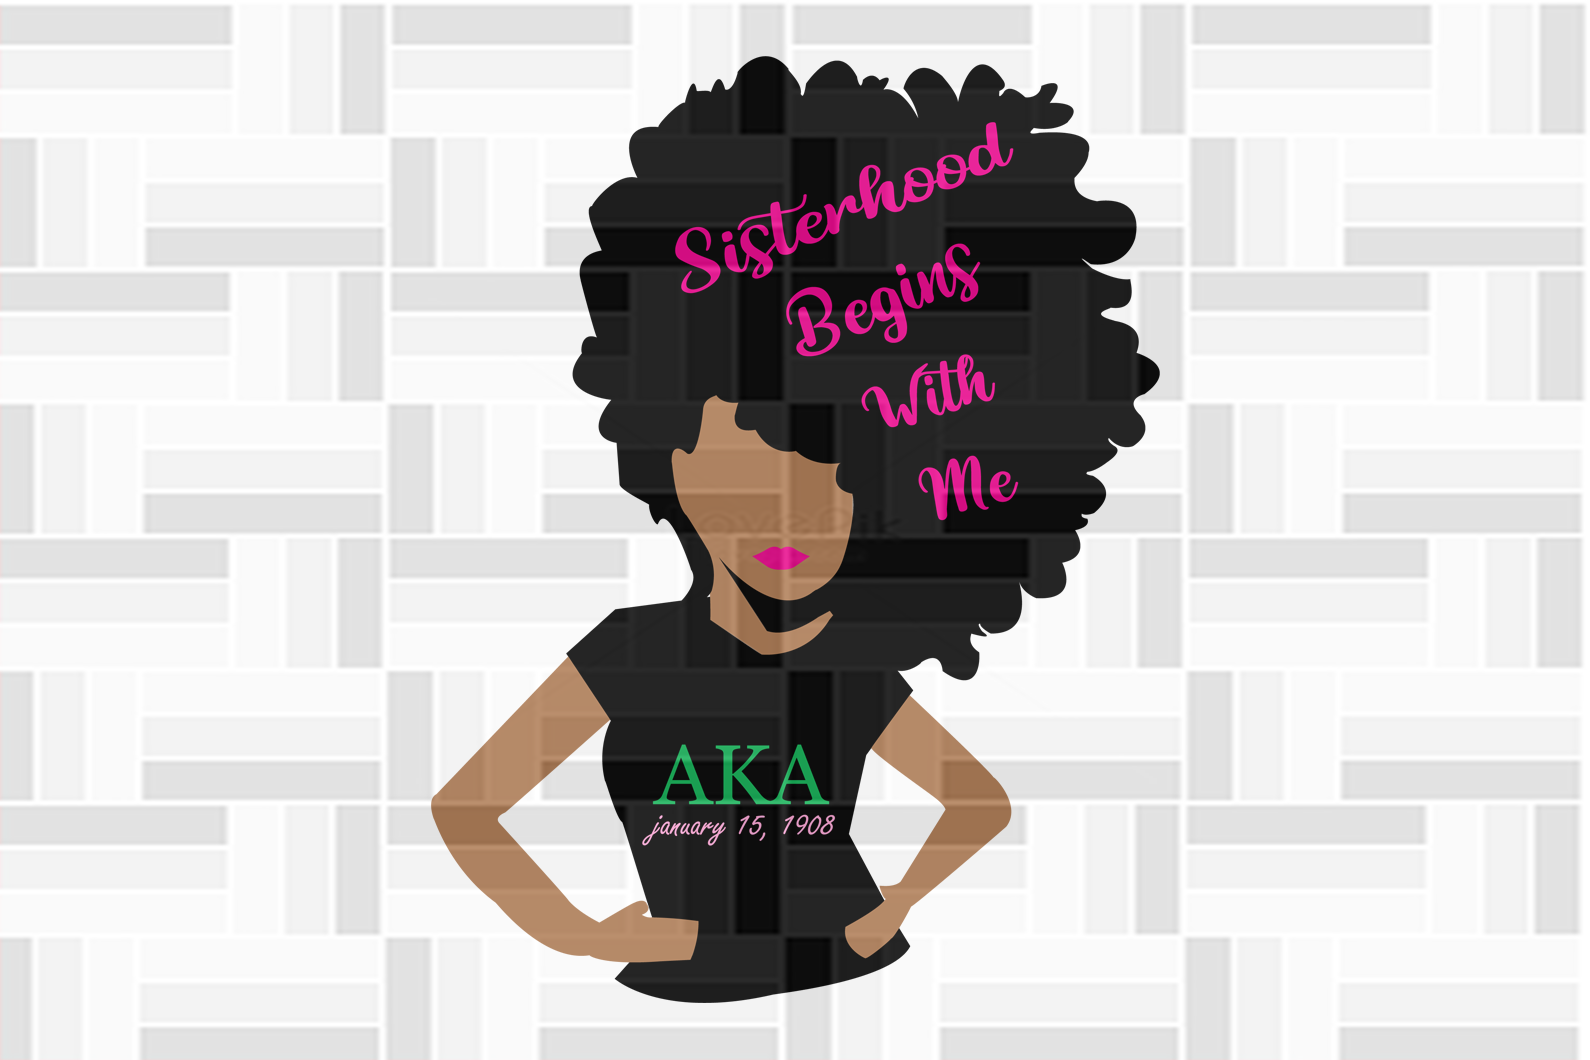 Sisterhood begins with me alpha kappa alpha, black girl, PNG, DXF, EPS, PDF, SVG